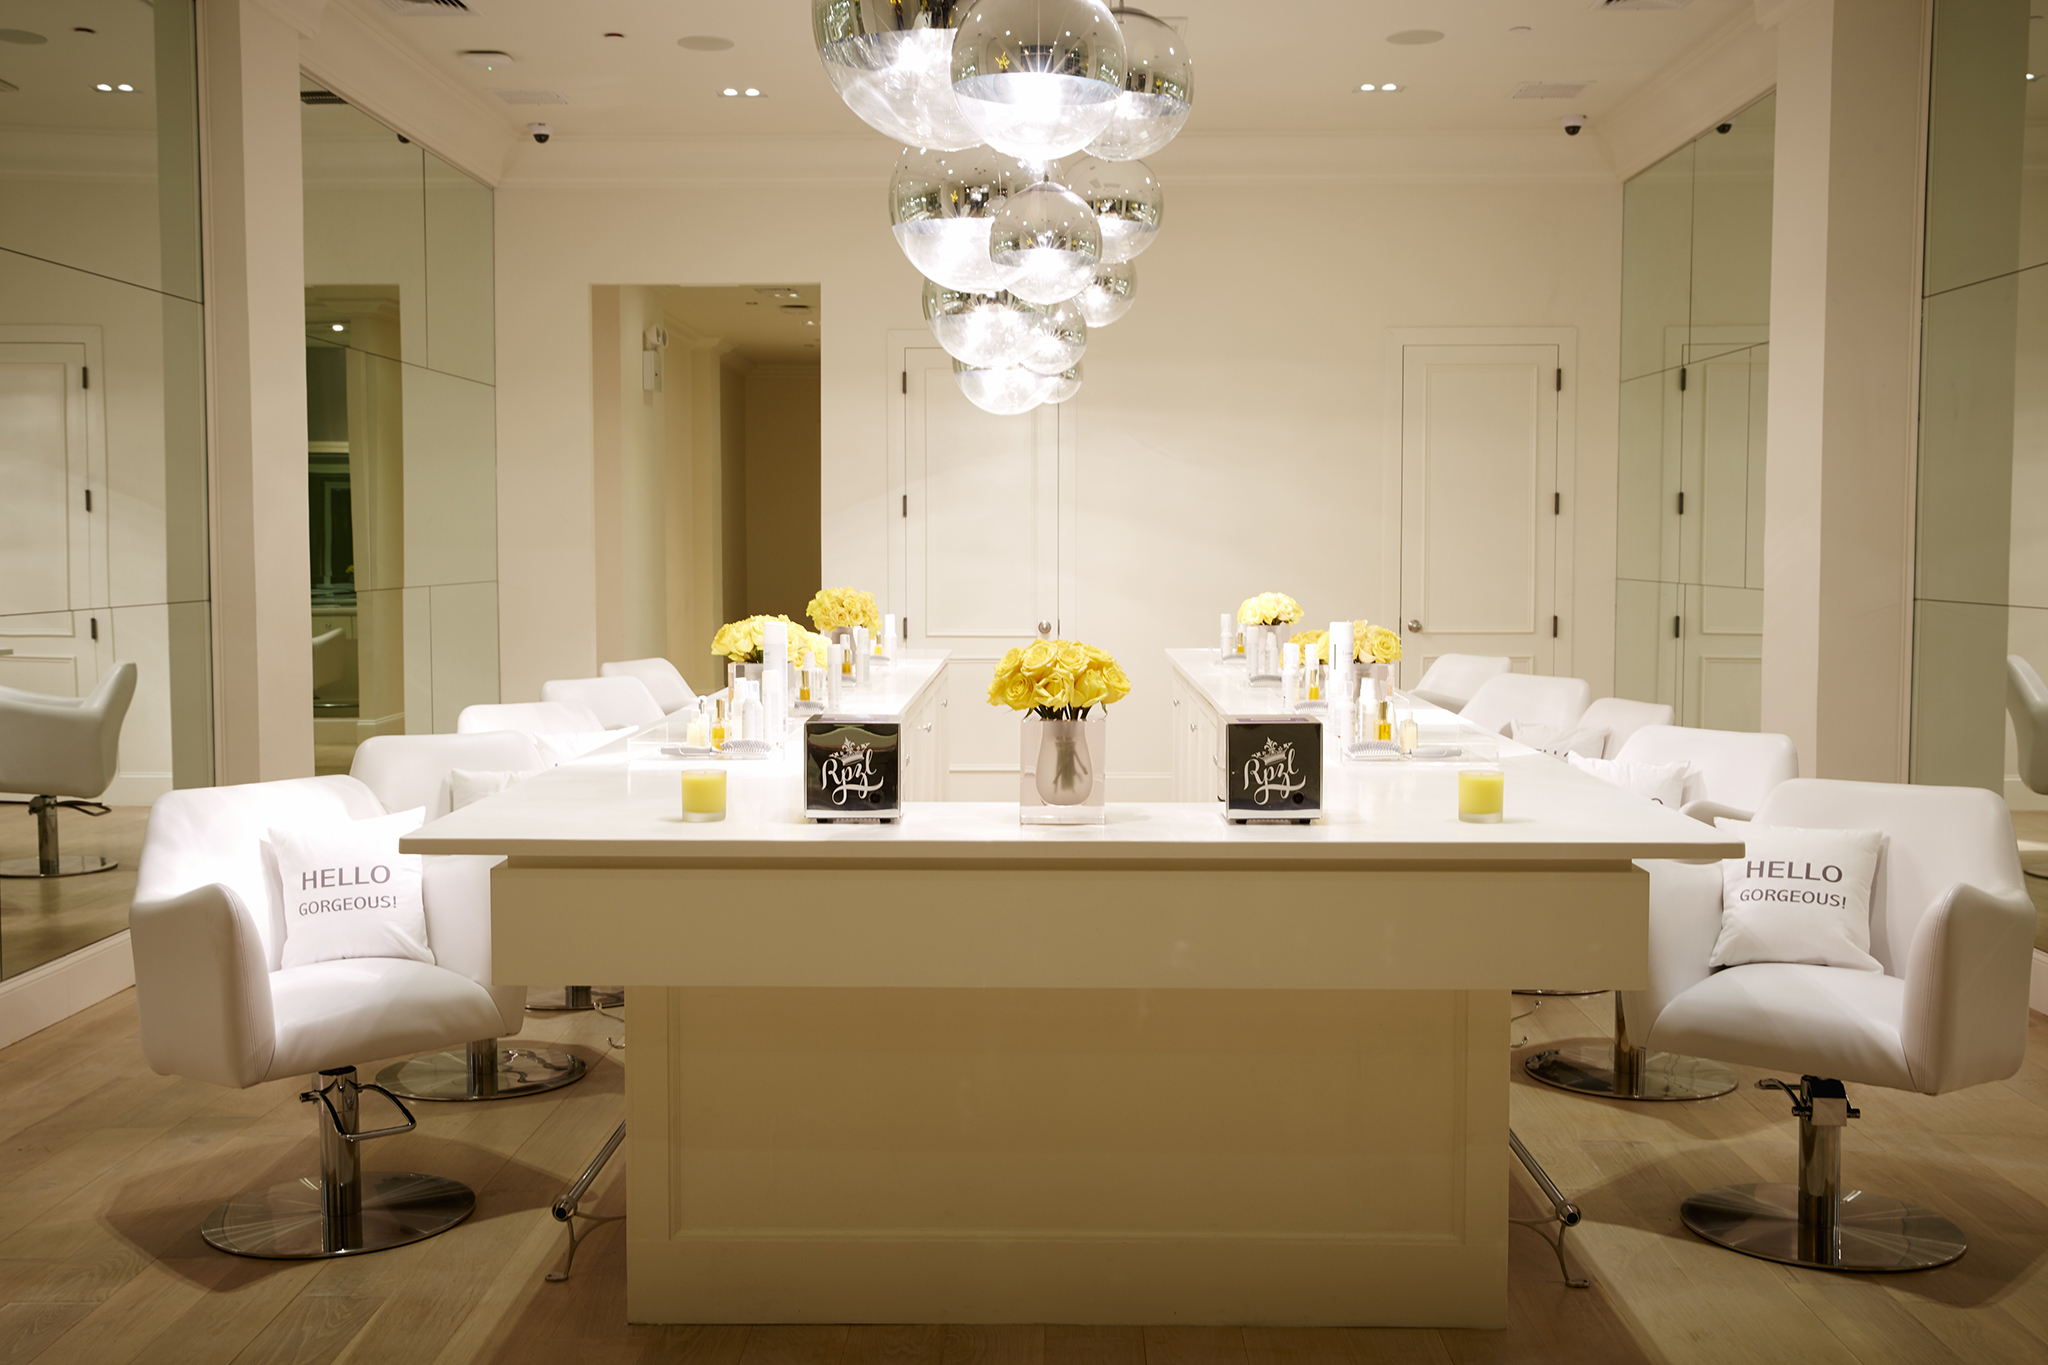 Find A Blow Dry Bar In Nyc For Great Hair Styles